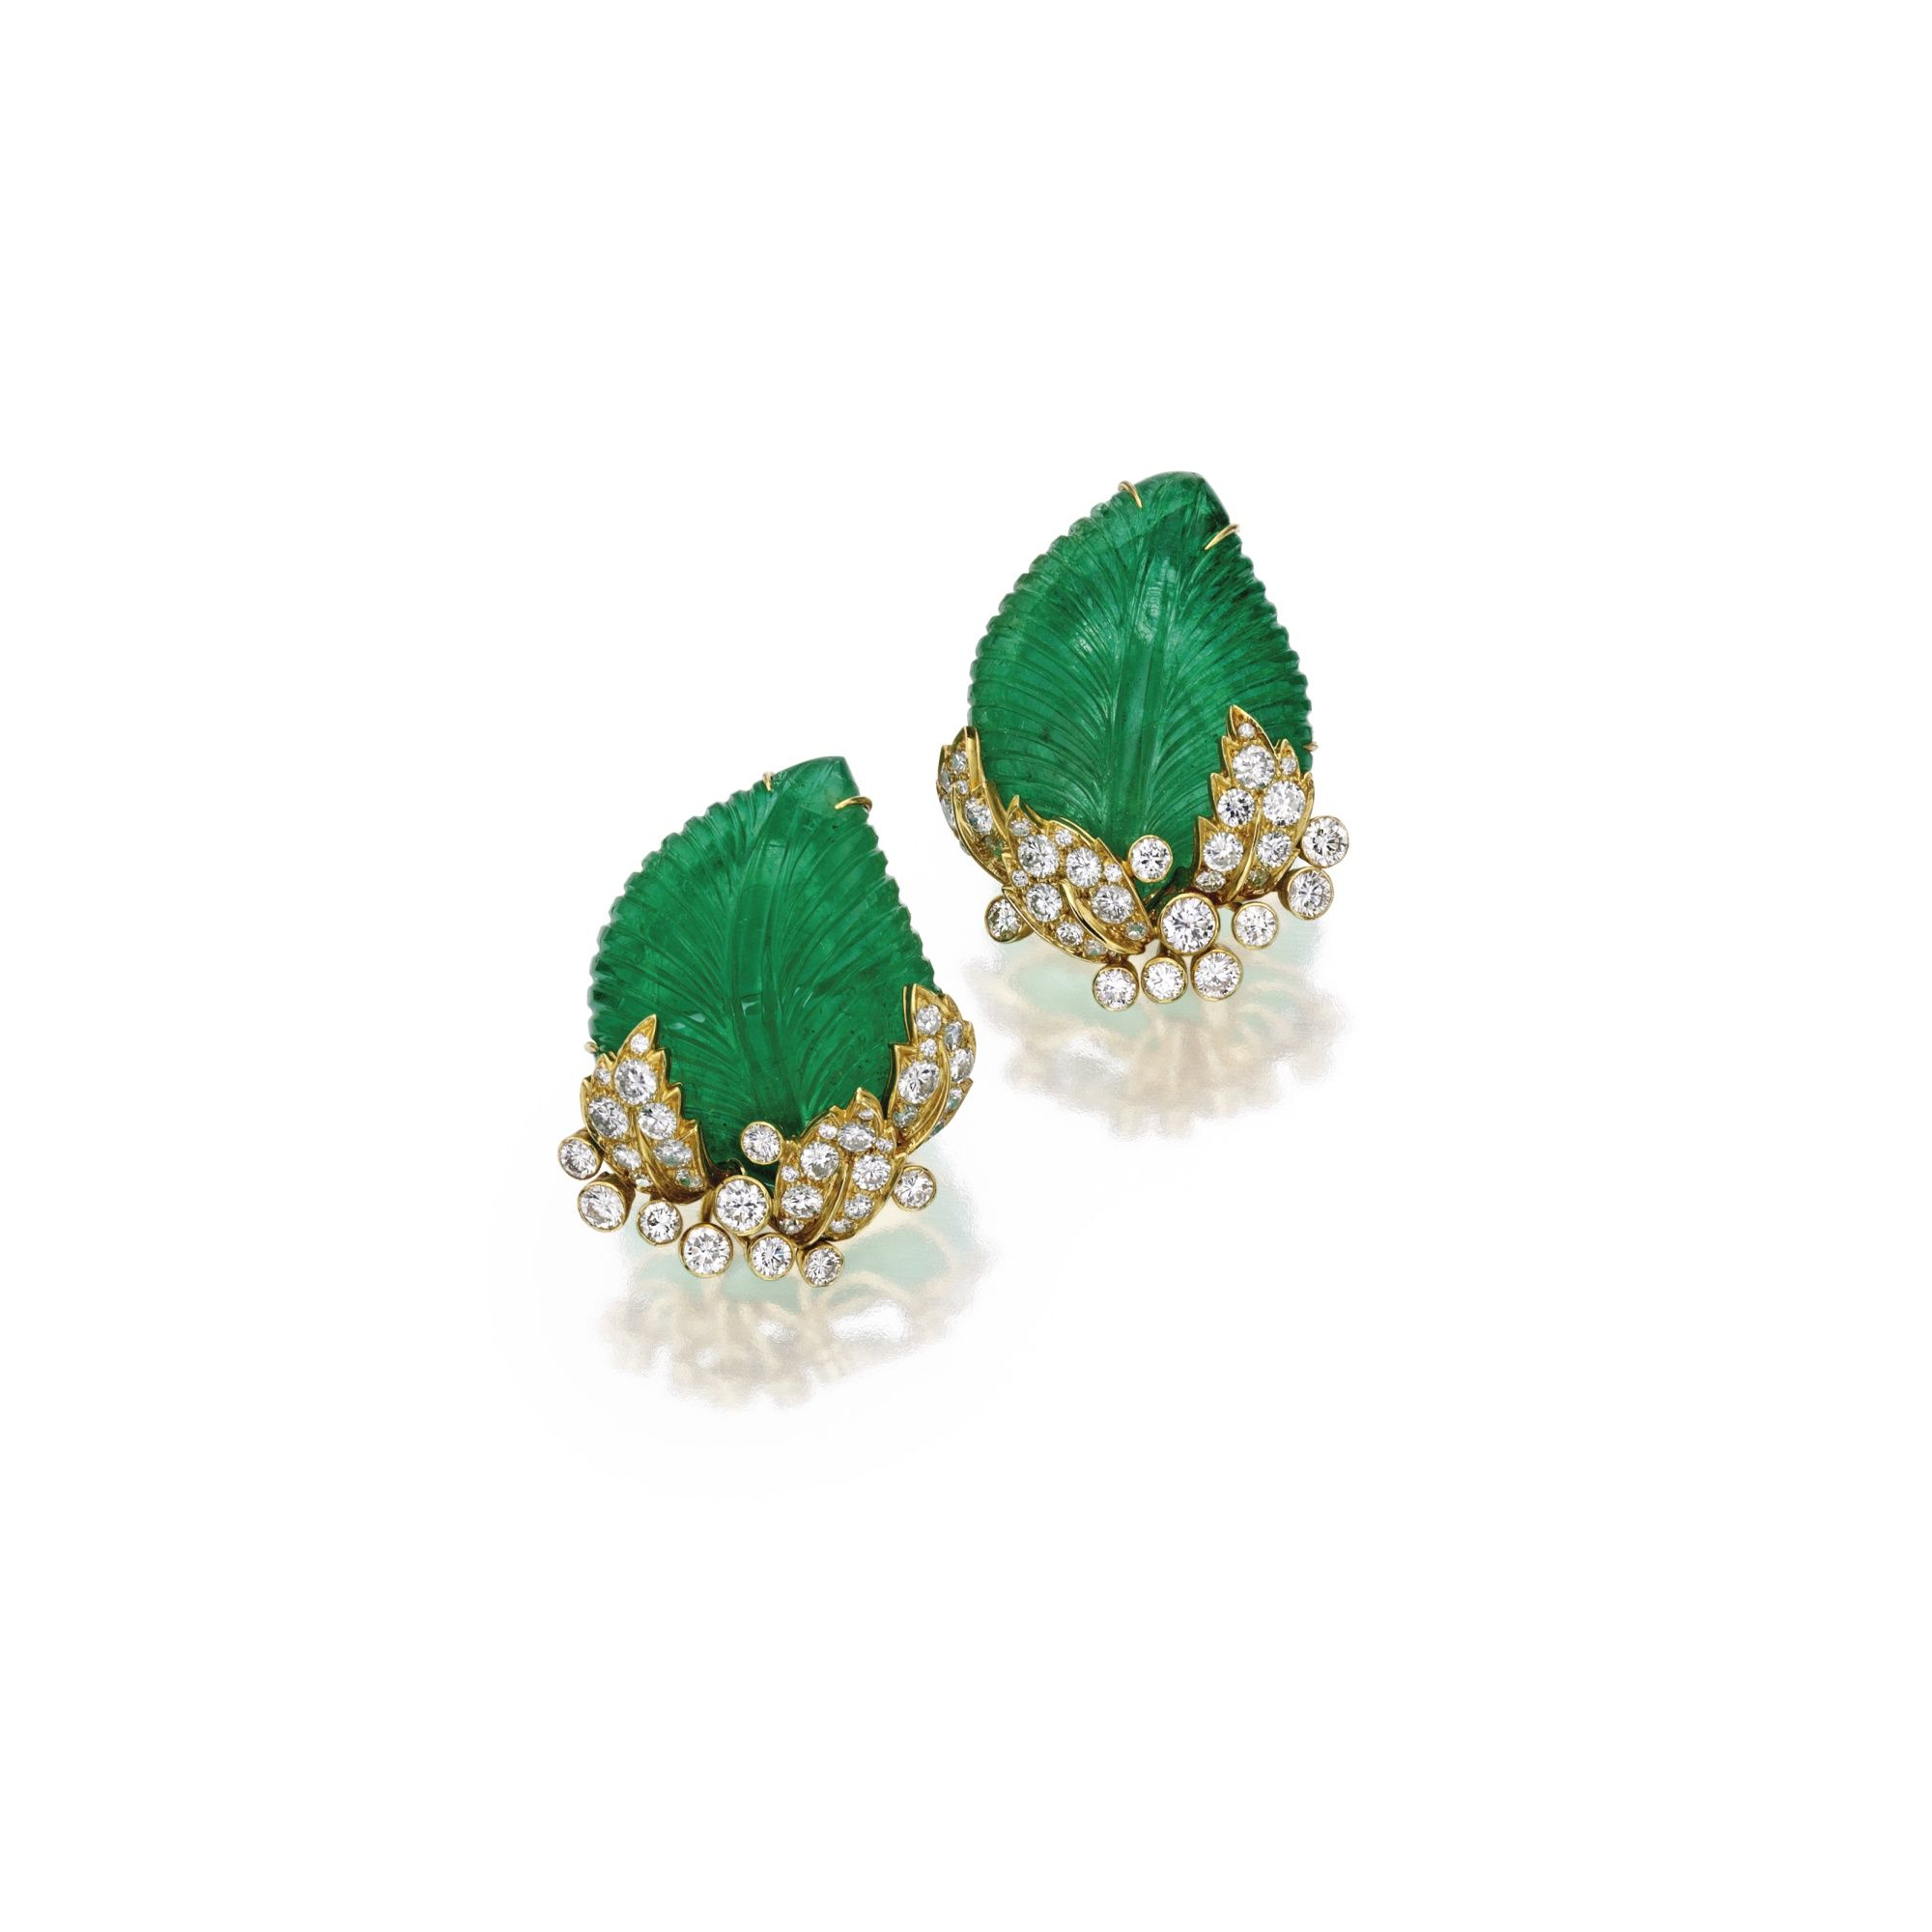 Pair of 18 Karat Gold, Emerald and Diamond Earclips, Marilyn Cooperman | Lot | Sotheby's